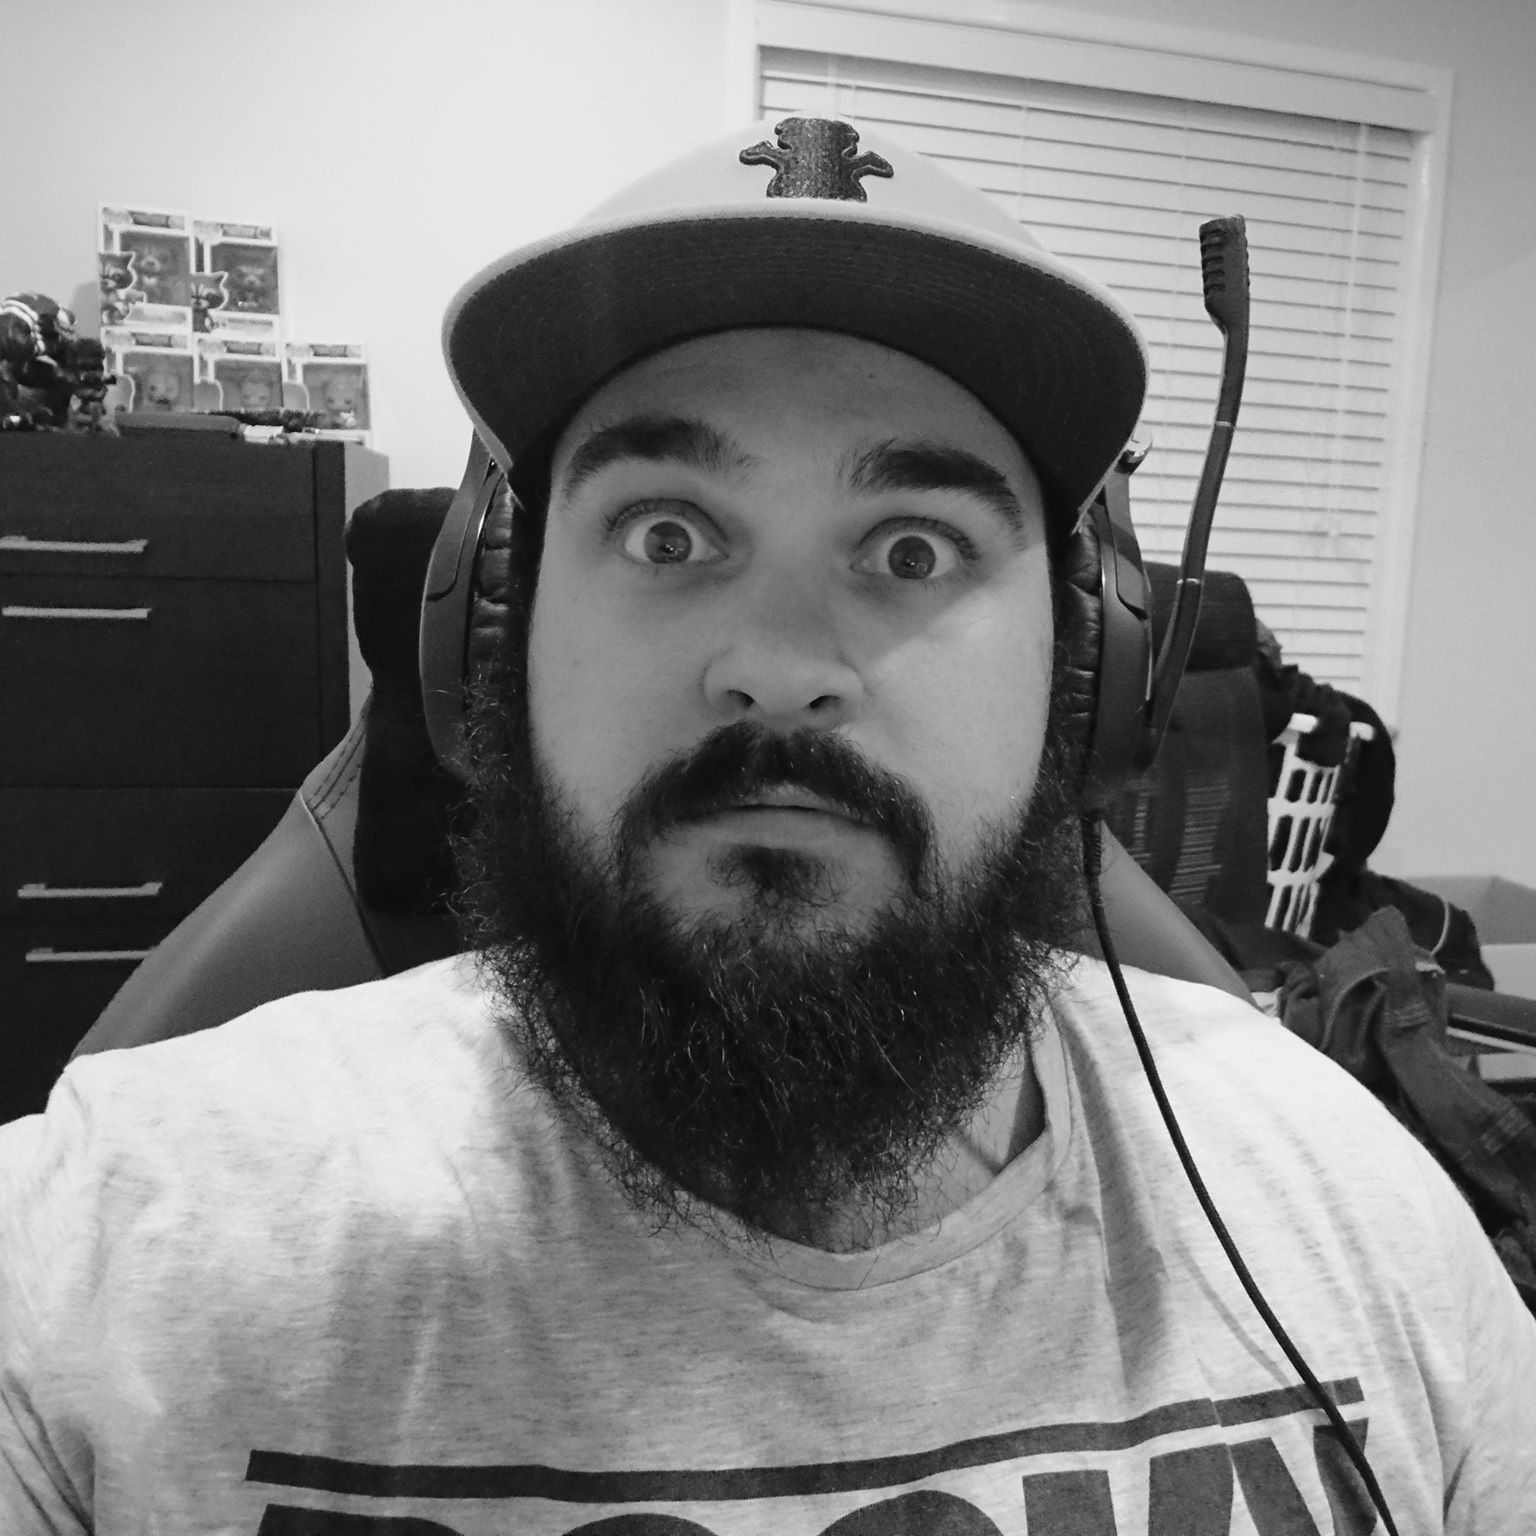 """BRAD """"CHESSIE"""" MULCHAY   Some might say he is the better looking half of Two Gamers One PC, while many would disagree immediately. Dirty metal worker turned content creator / part time streamer.  First Person Shooters are definitely his forte as his short attention span seems to be perfect for games like Battlefield 4 and PUBG."""